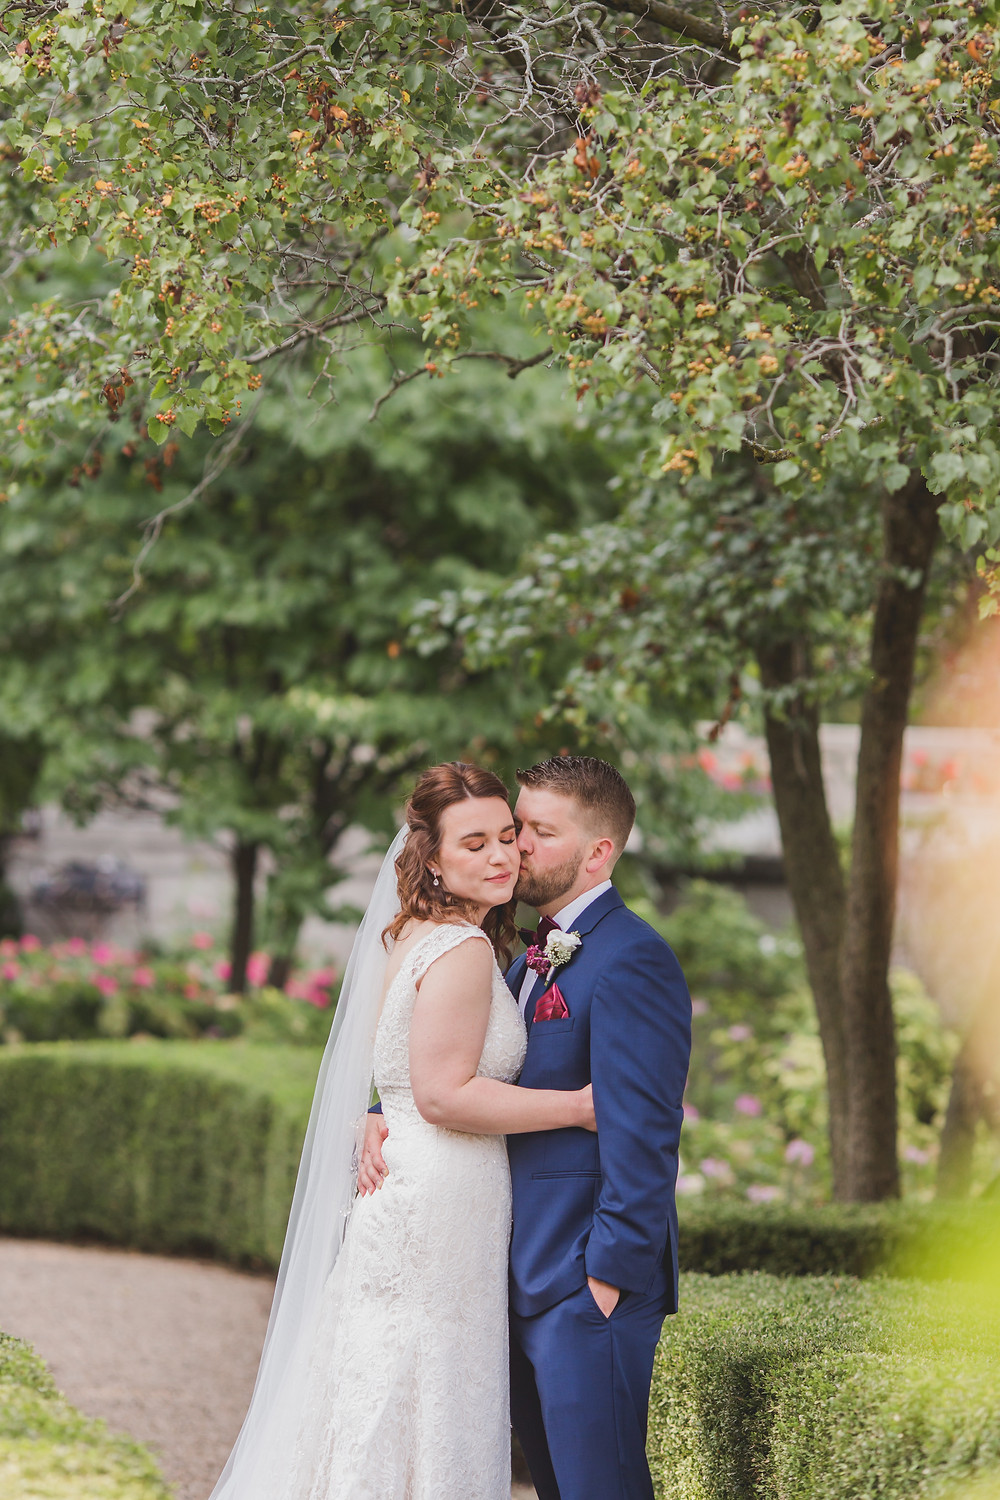 Hotel Baker wedding. Saint Charles IL wedding photographer